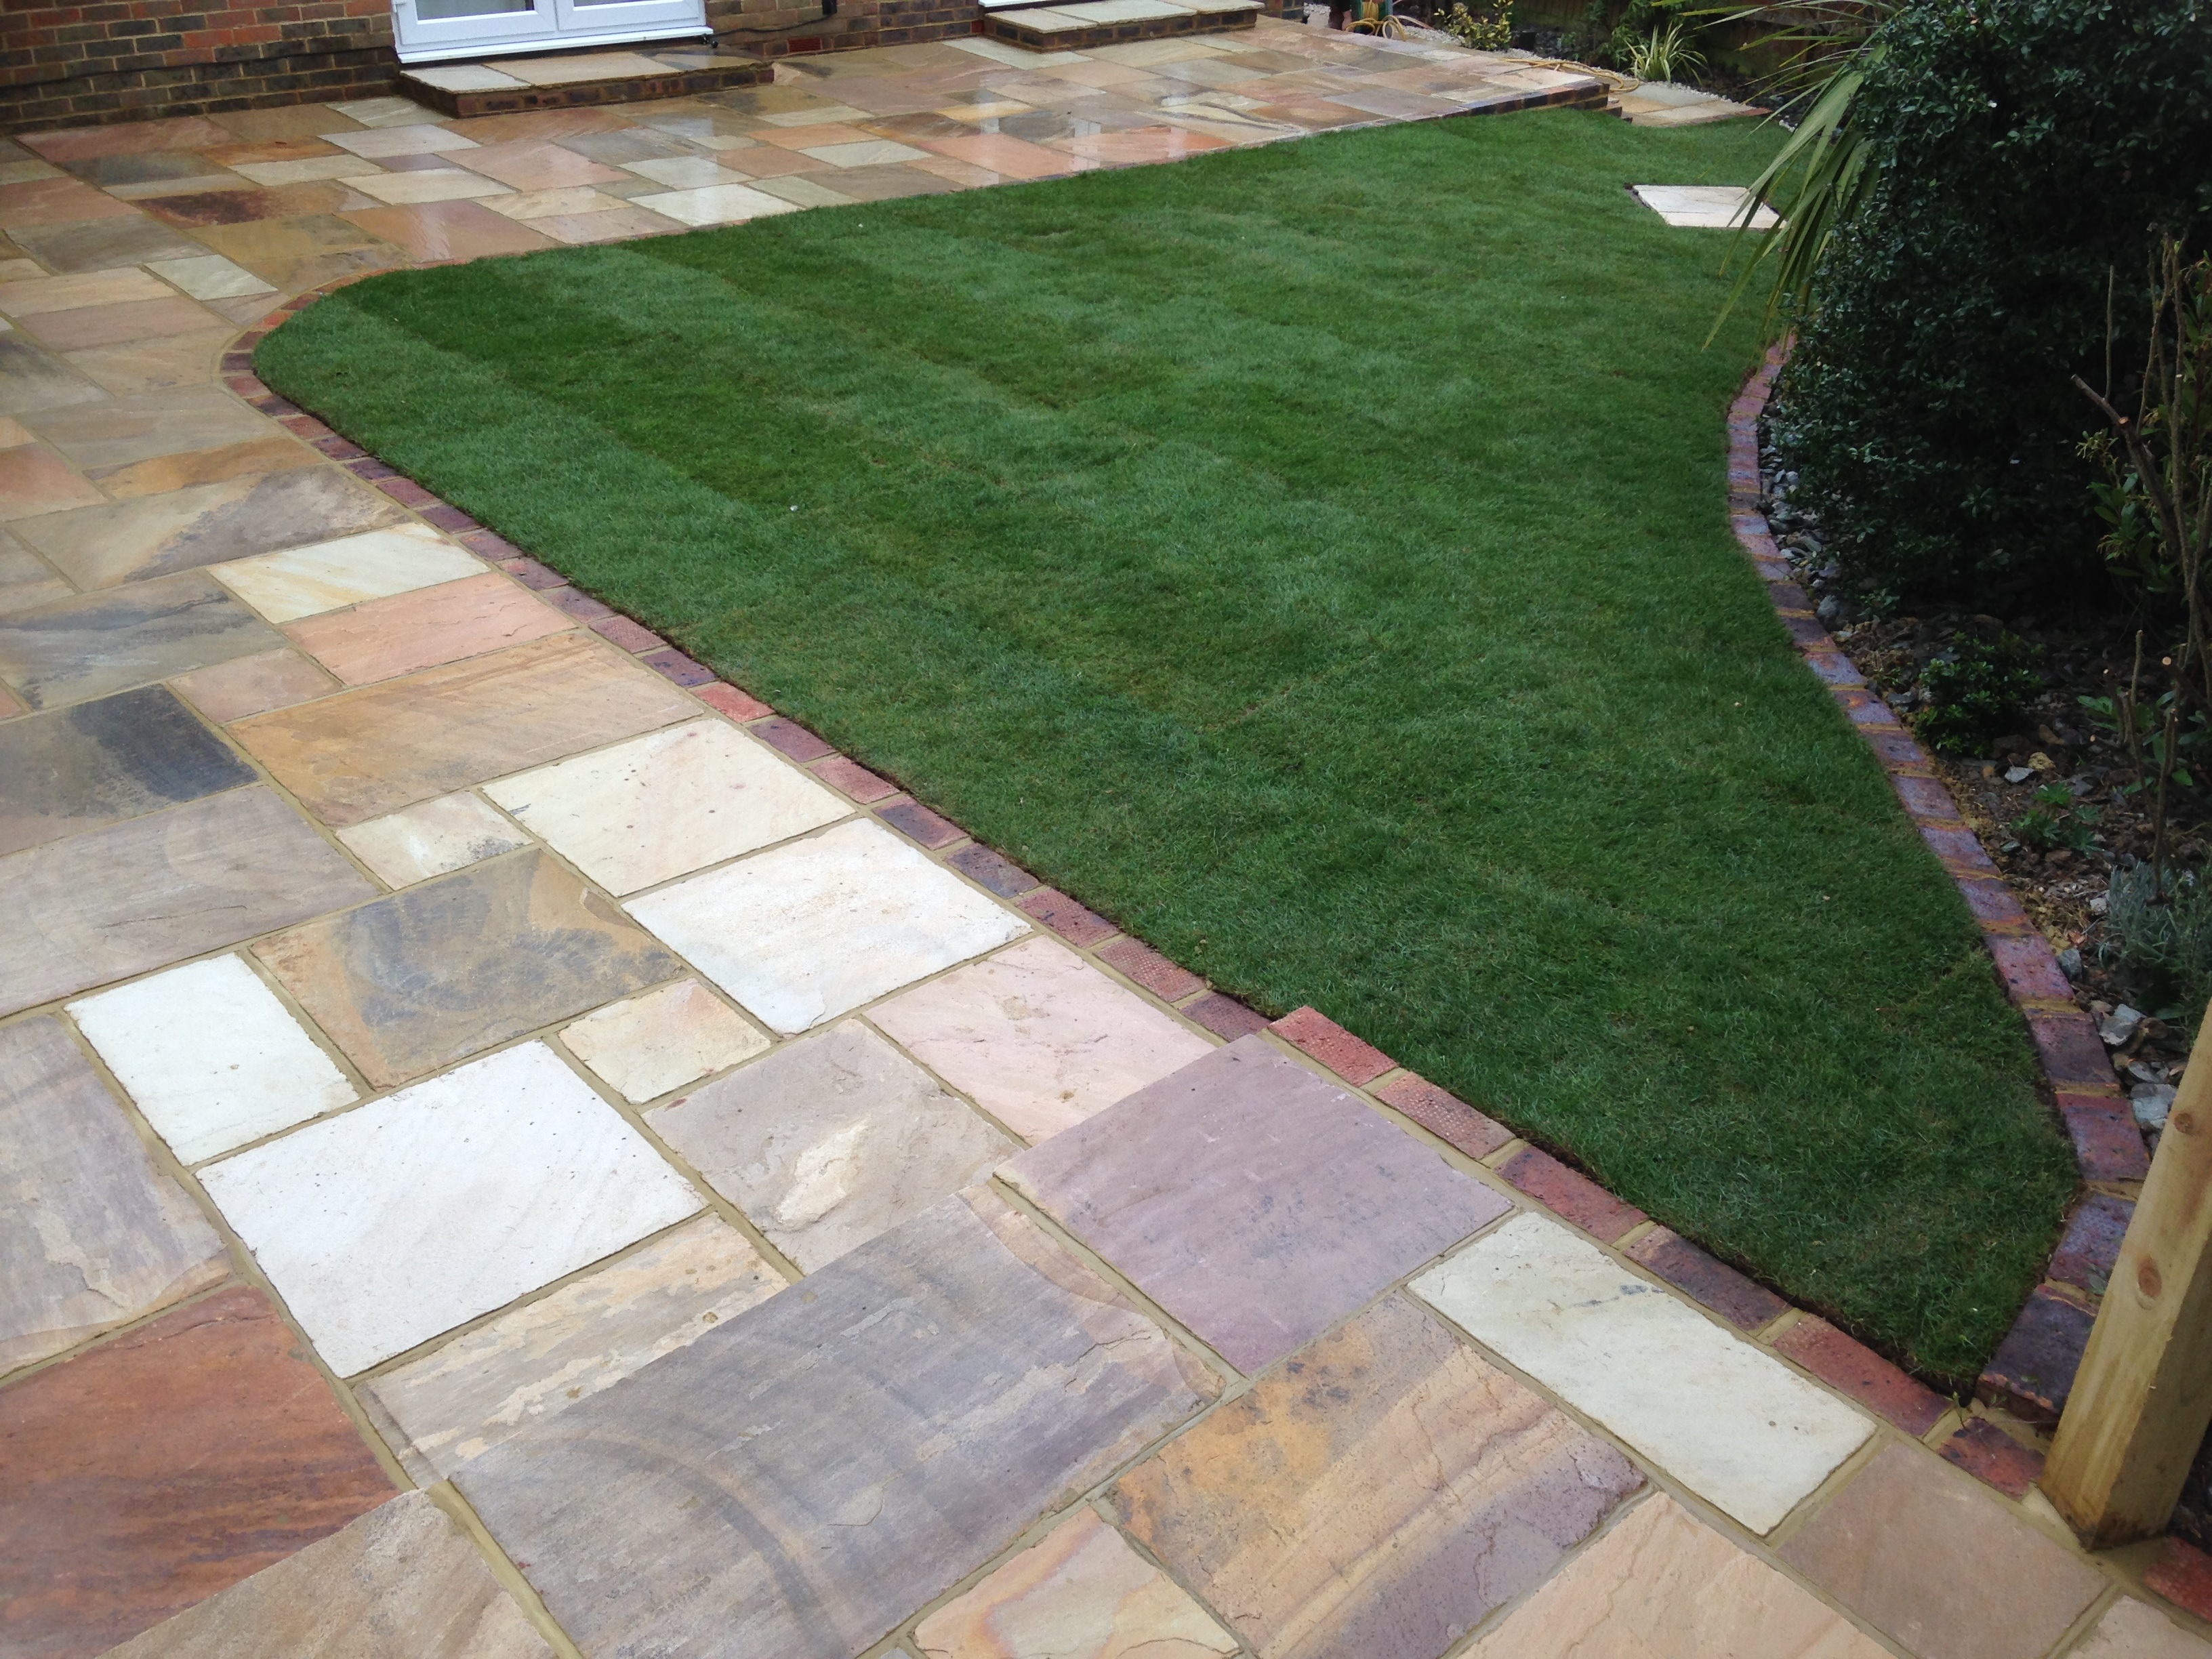 New lawn with brick stone edging